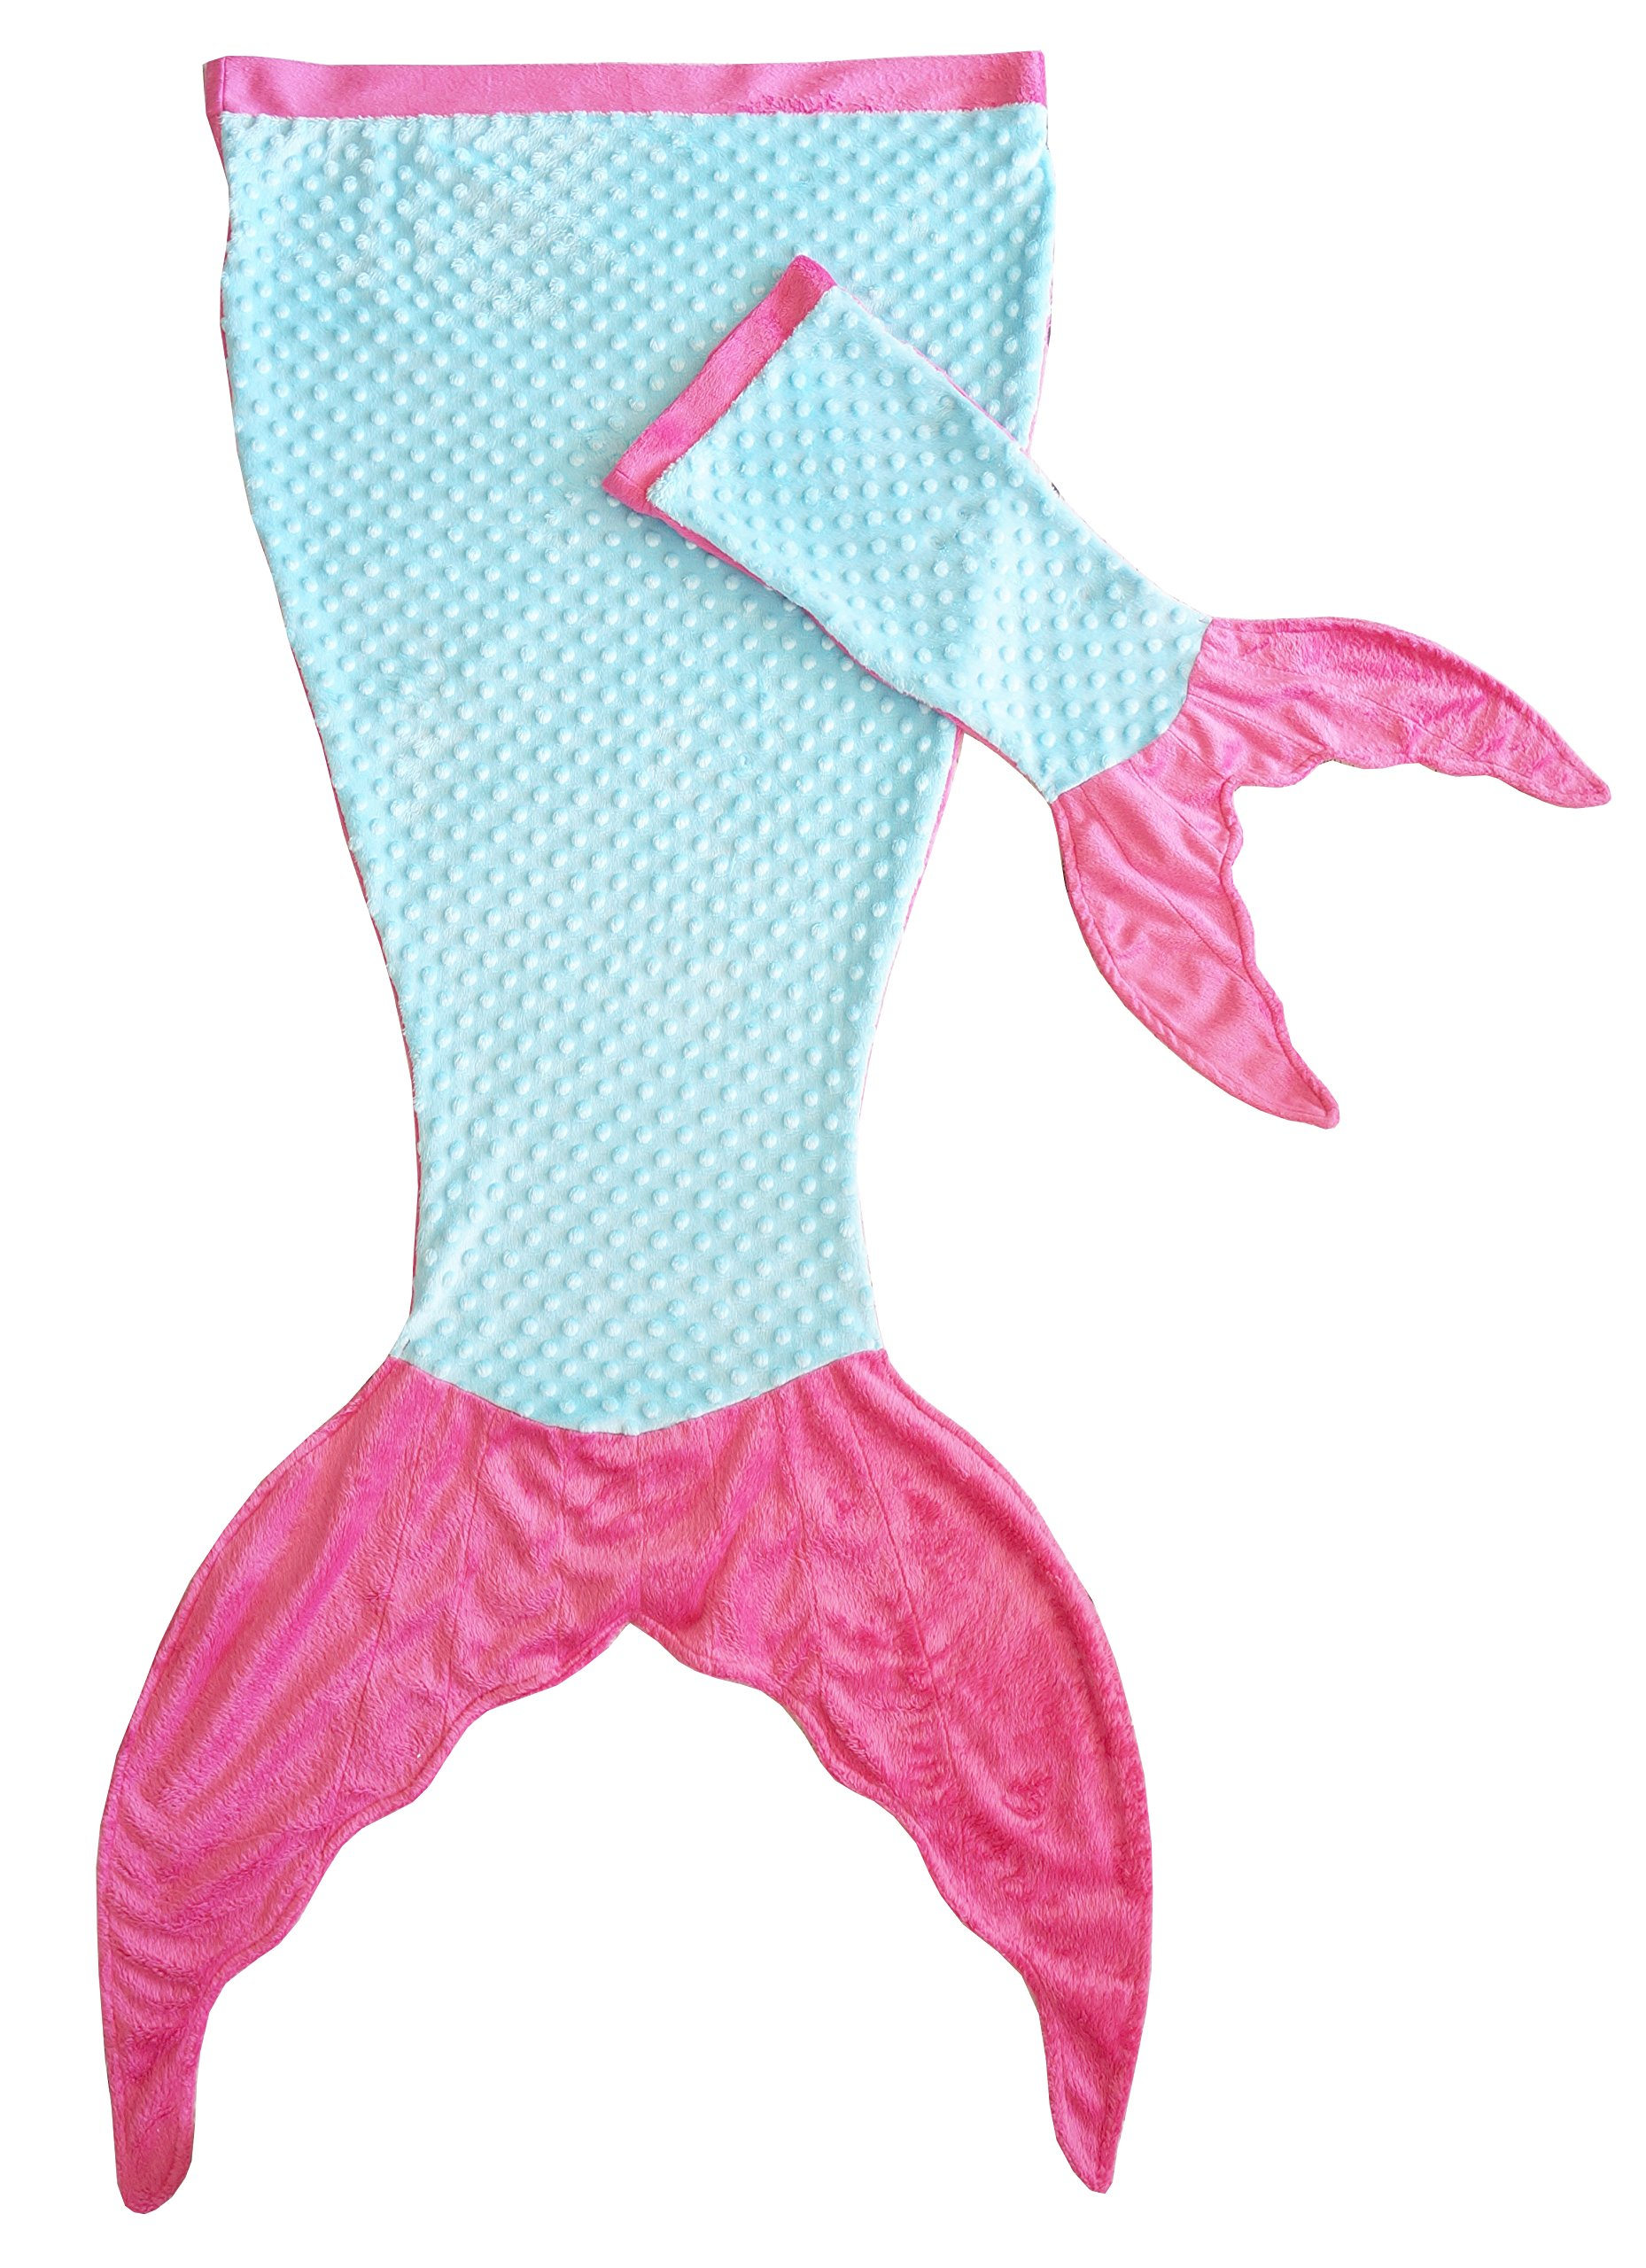 Posh Peanut Mermaid Tail Blanket for Girls - Soft Kids Blankie Made by Minky Plush - Includes a Free Newborn Blanket - Makes Great Gift for Ages (0 Months to 11 Years) by Posh Peanut